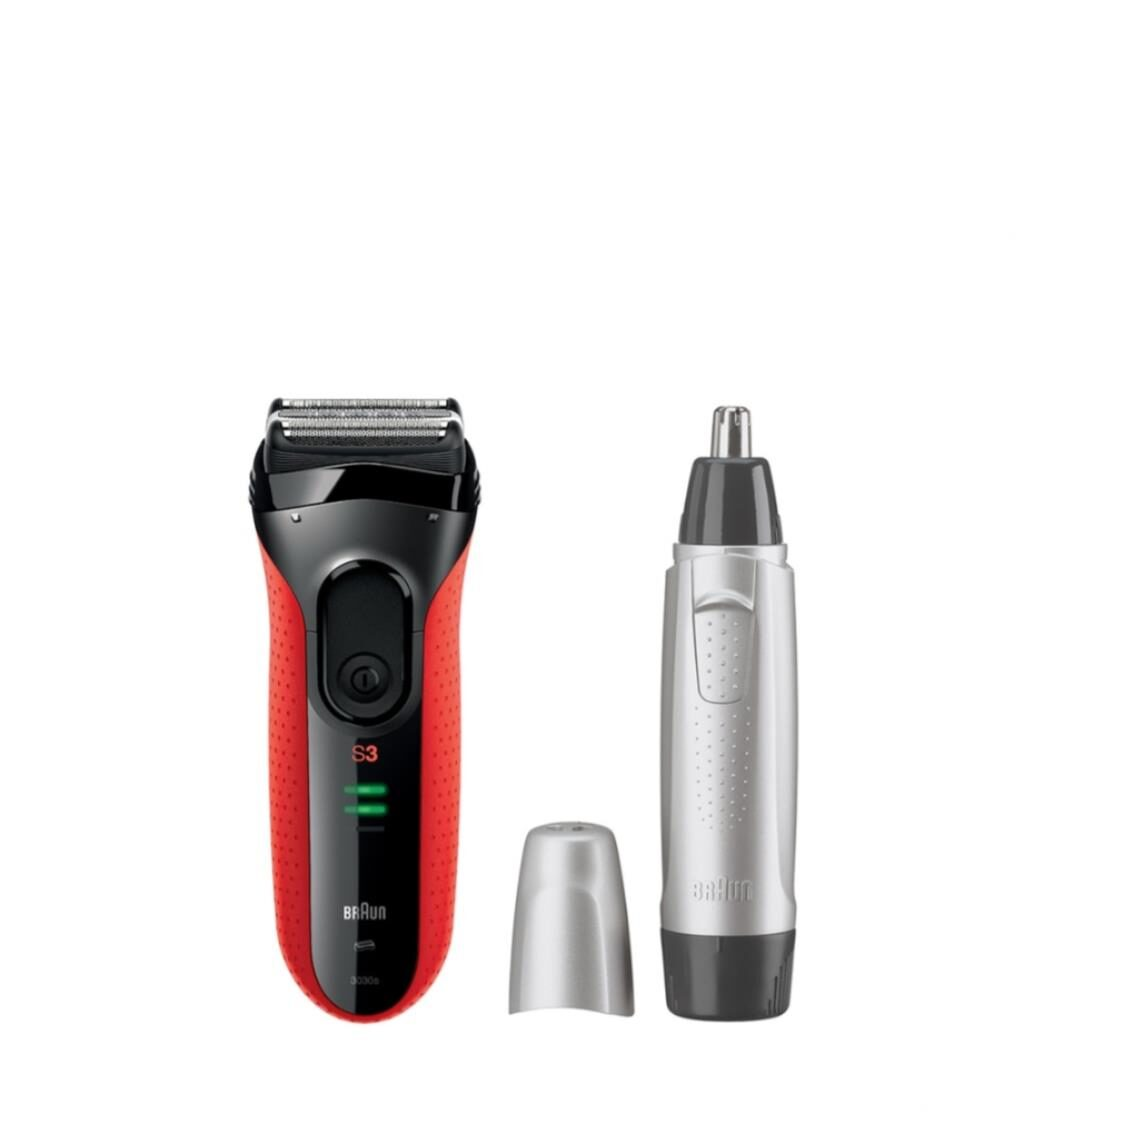 Series 3 Shaver S3 3030VS Free Ear  Nose Trimmer worth 29